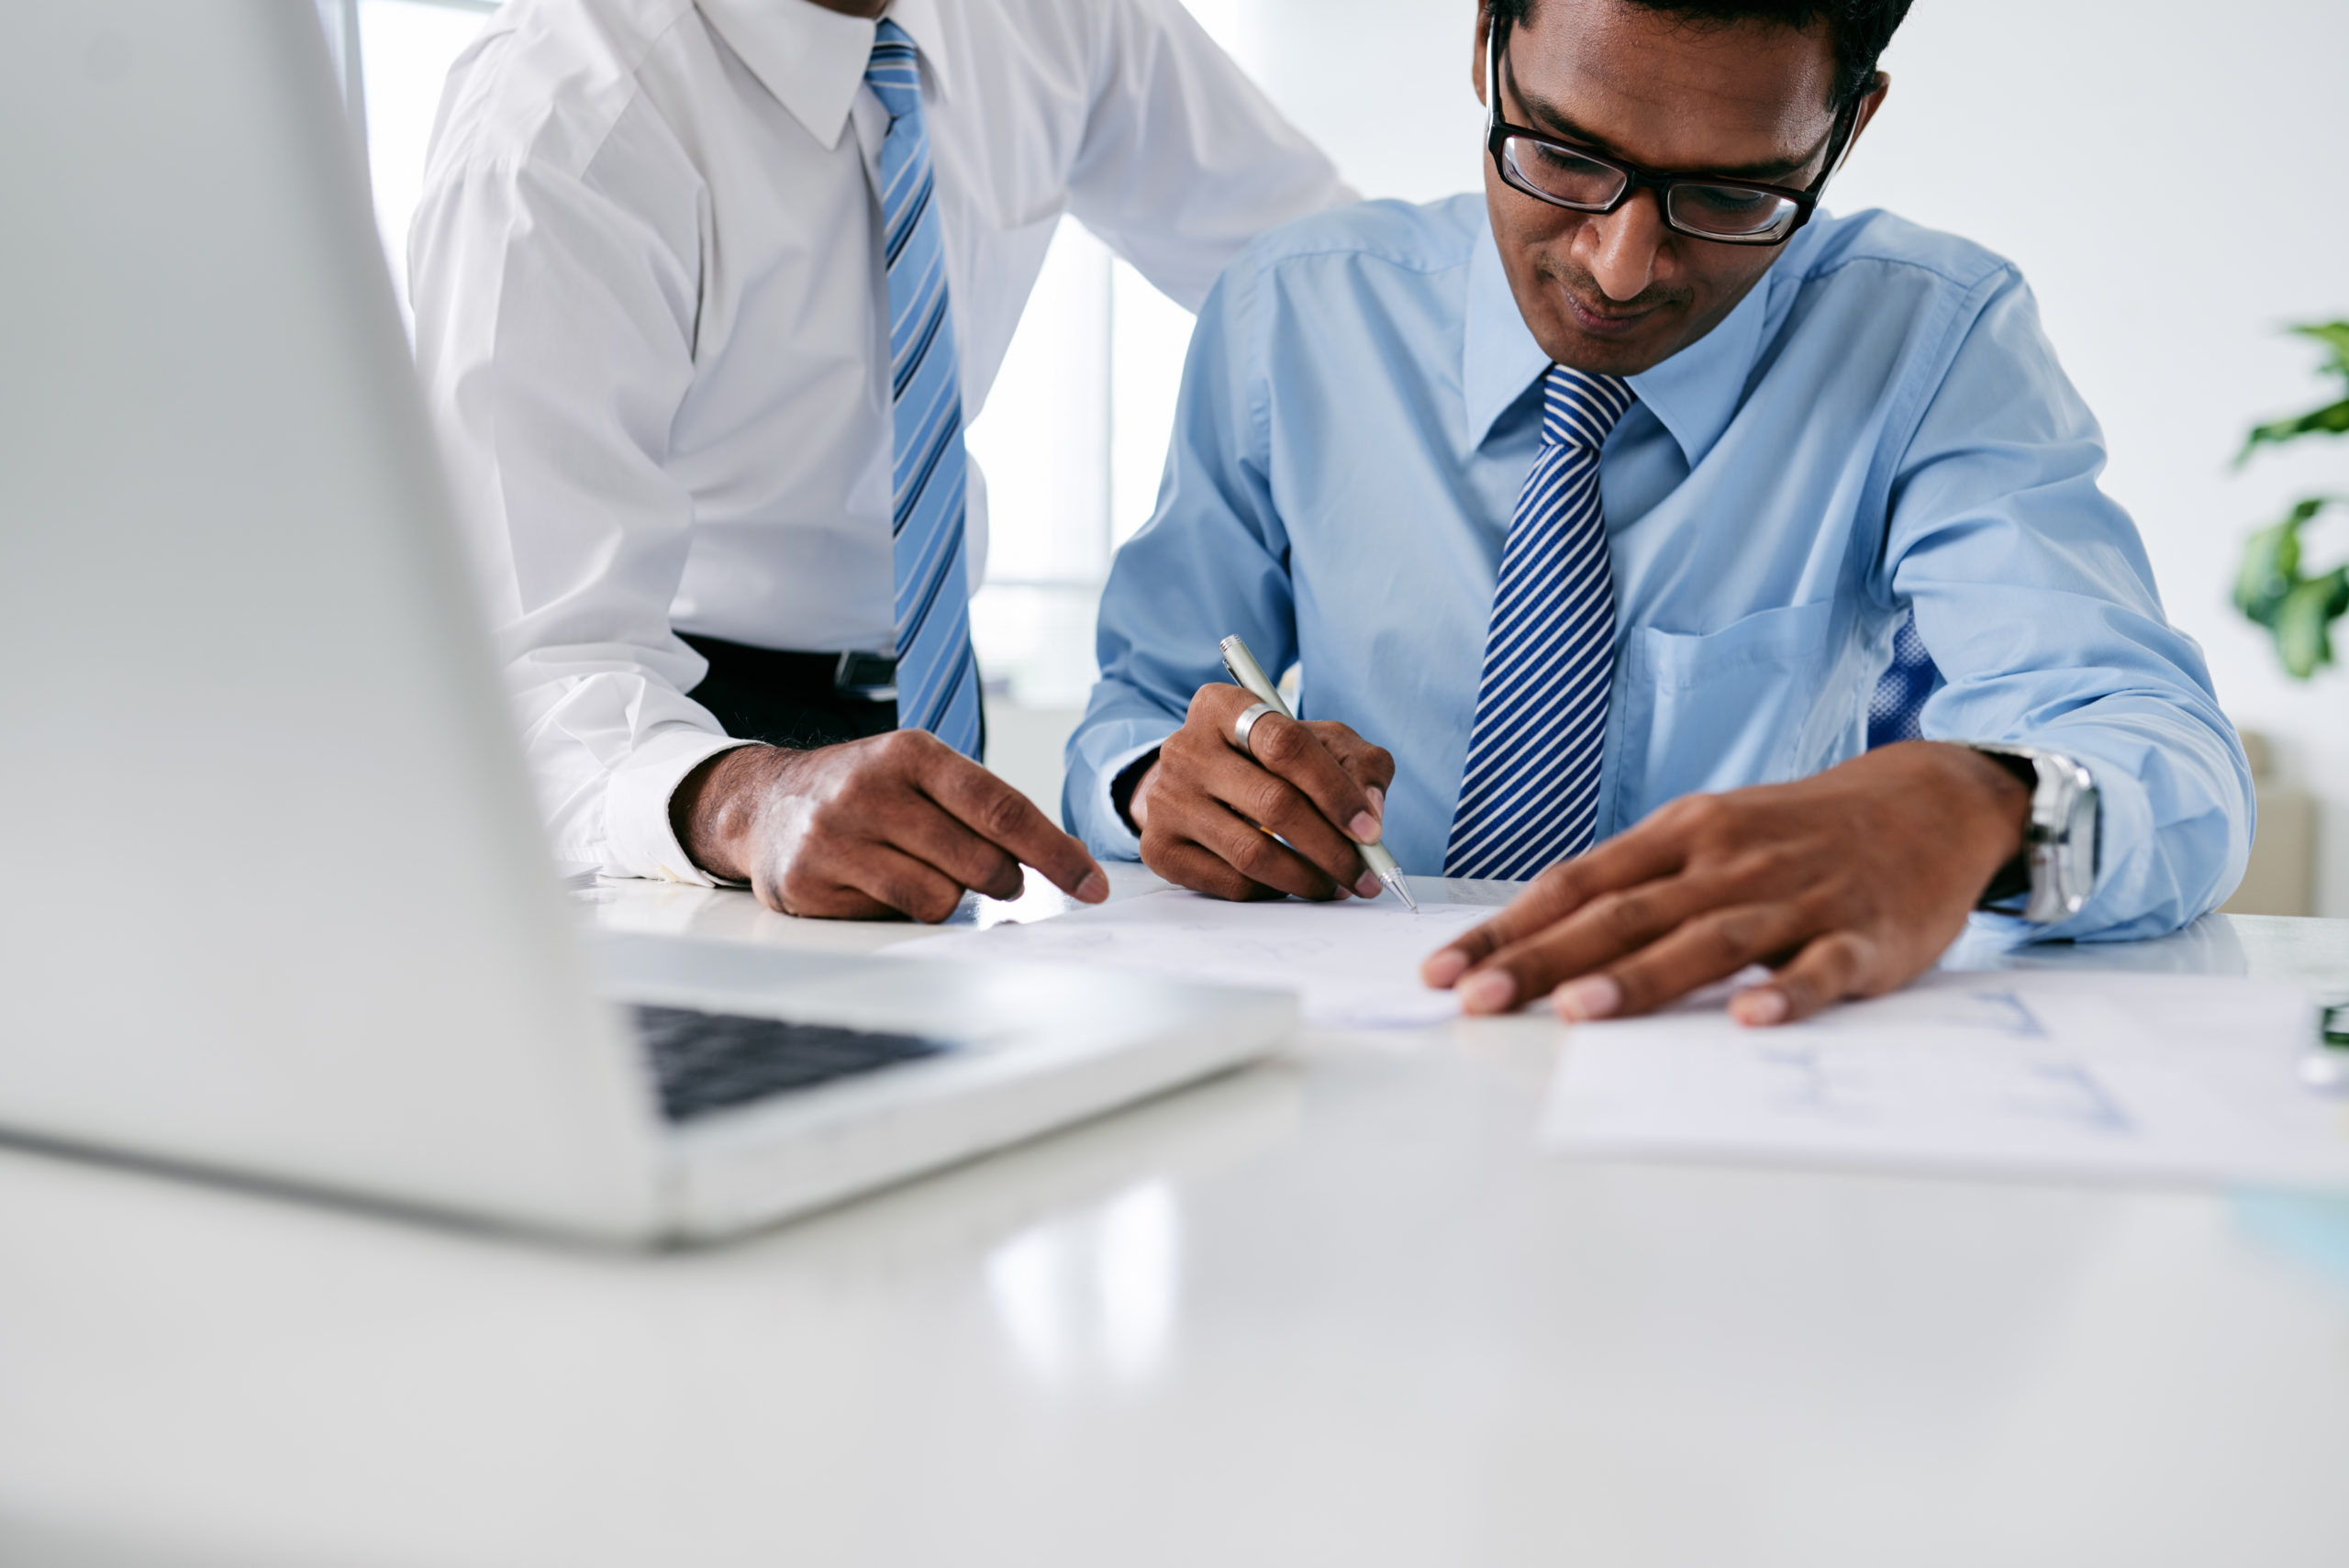 Colleagues signing contract at table in office